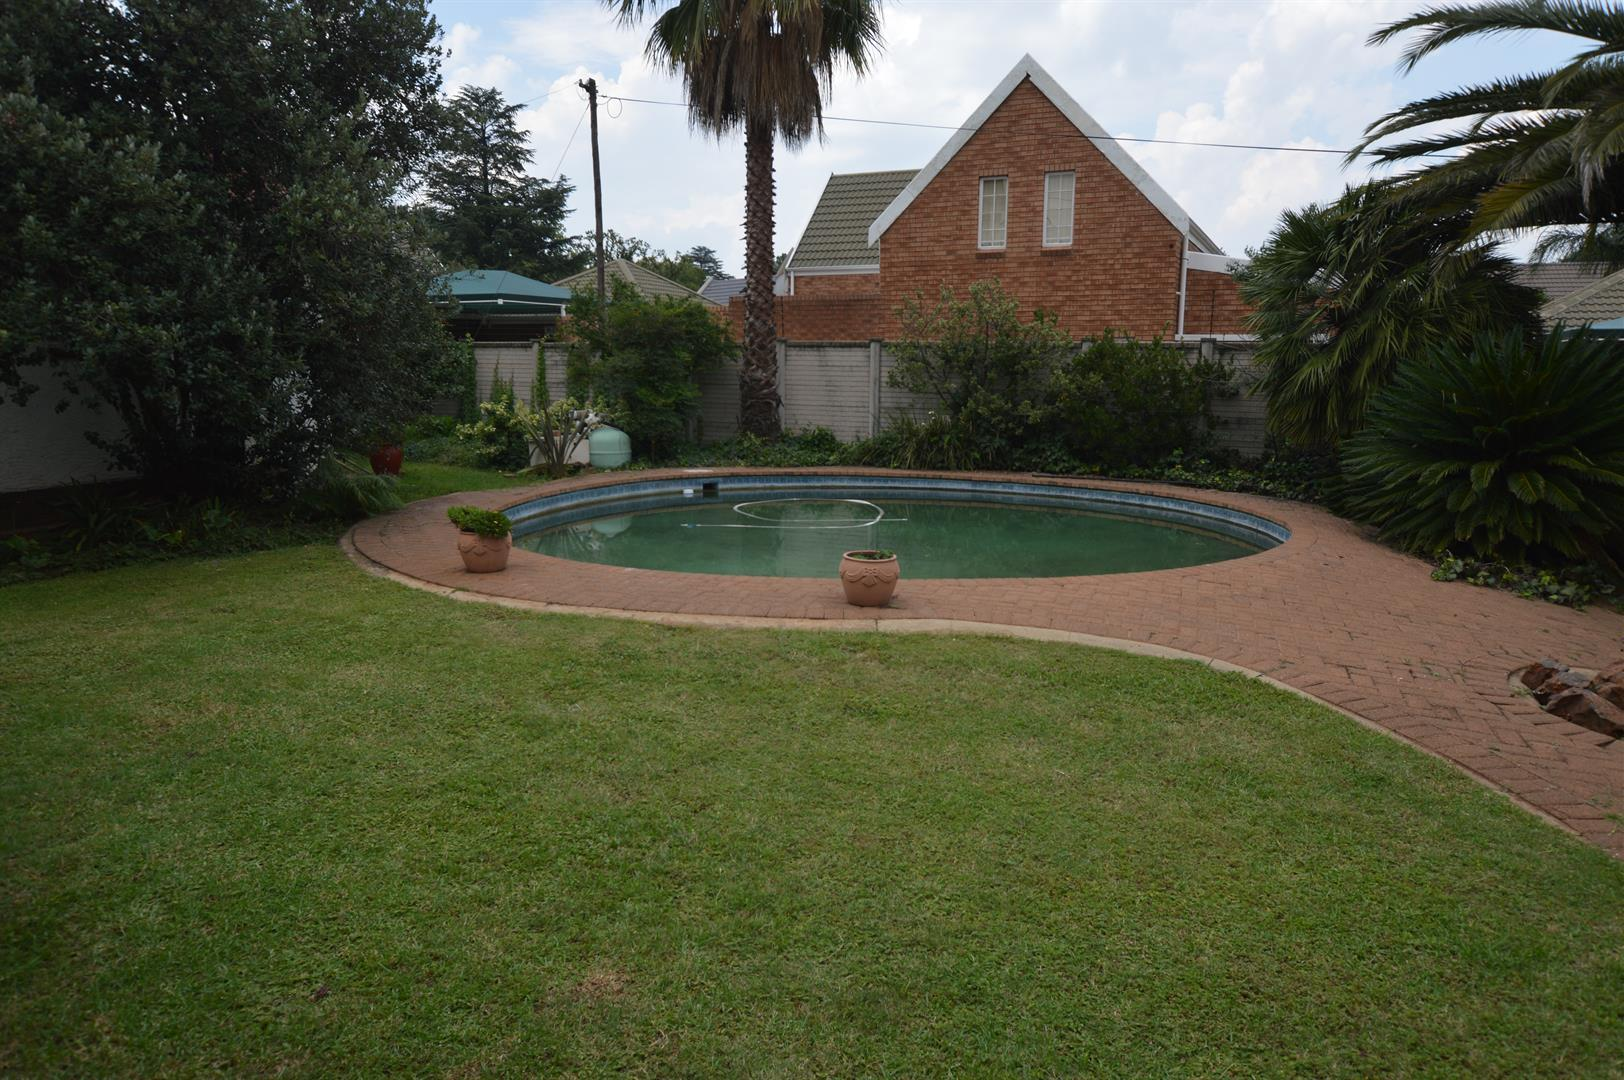 Vanderbijlpark Sw 5 for sale property. Ref No: 13443705. Picture no 22